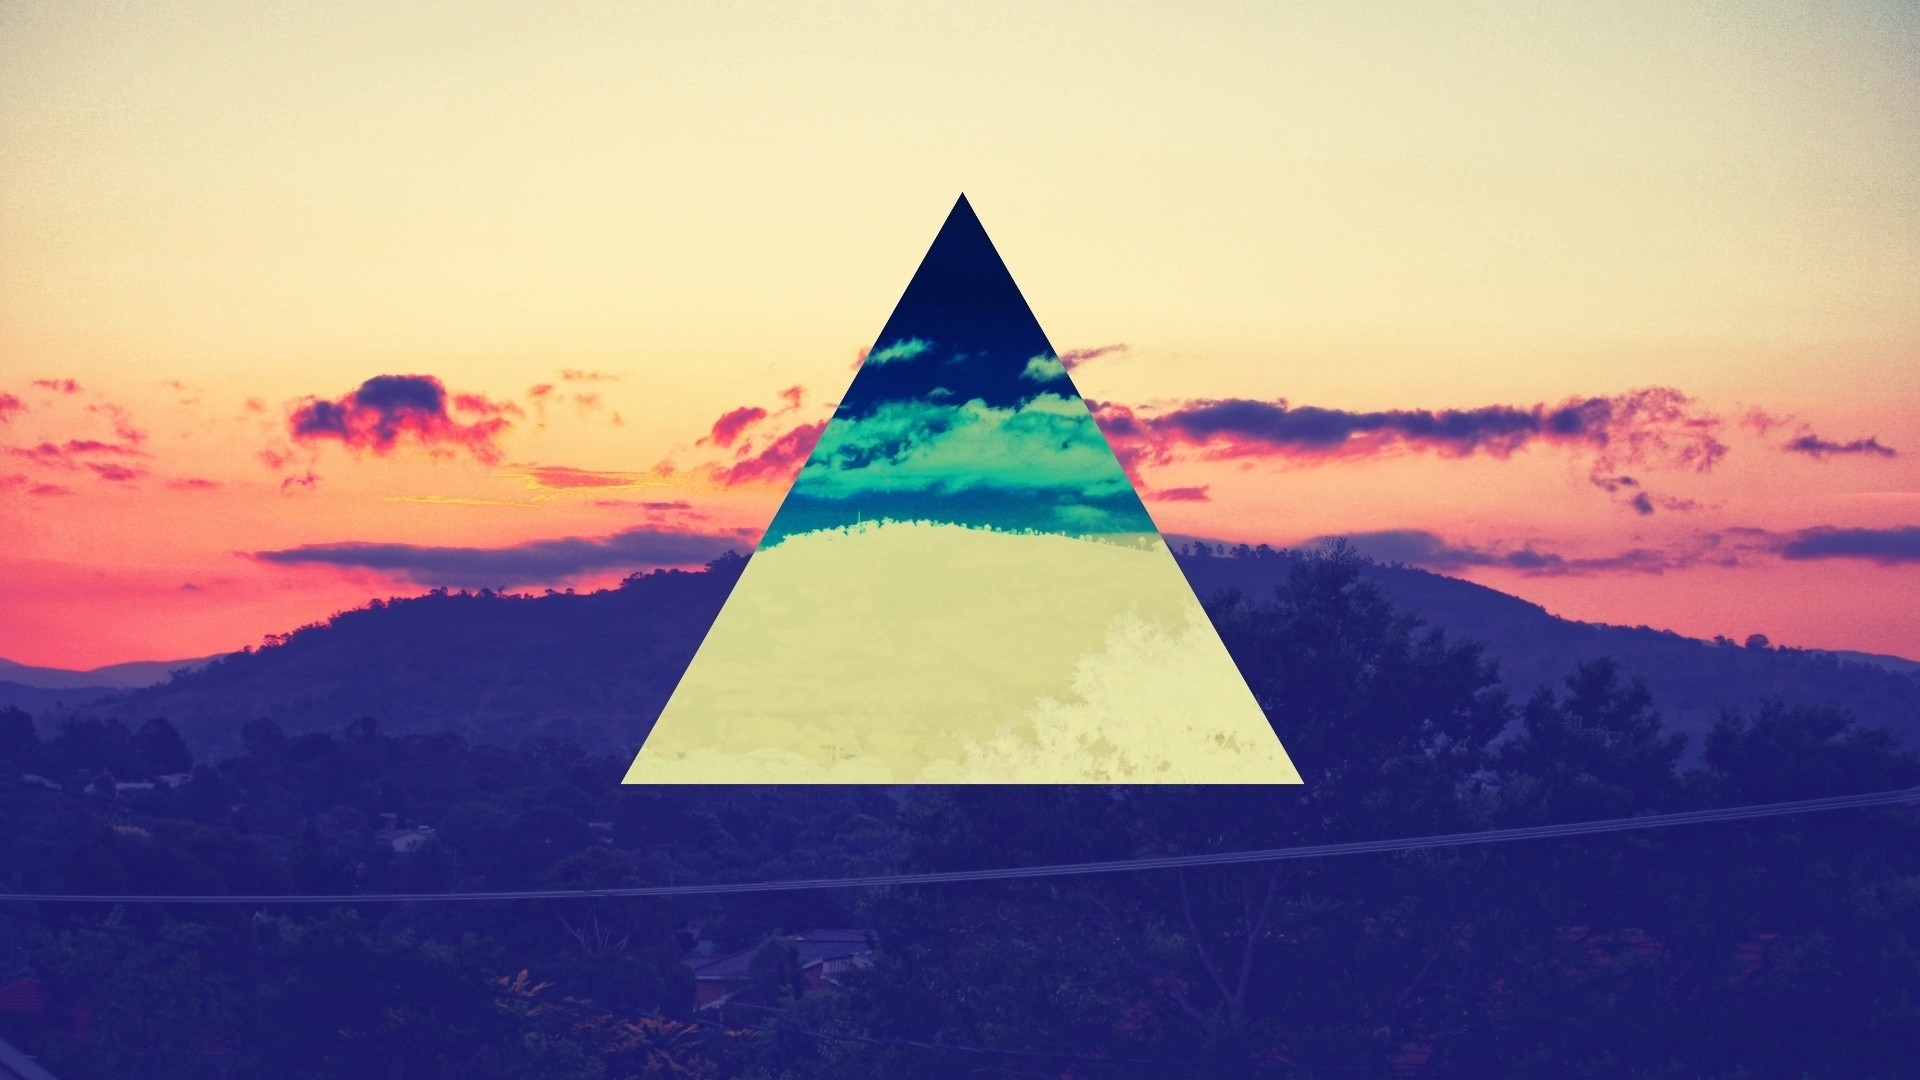 hipster swag color spectrum triangles 1920x1080 wallpaper Wallpaper HD 1920x1080